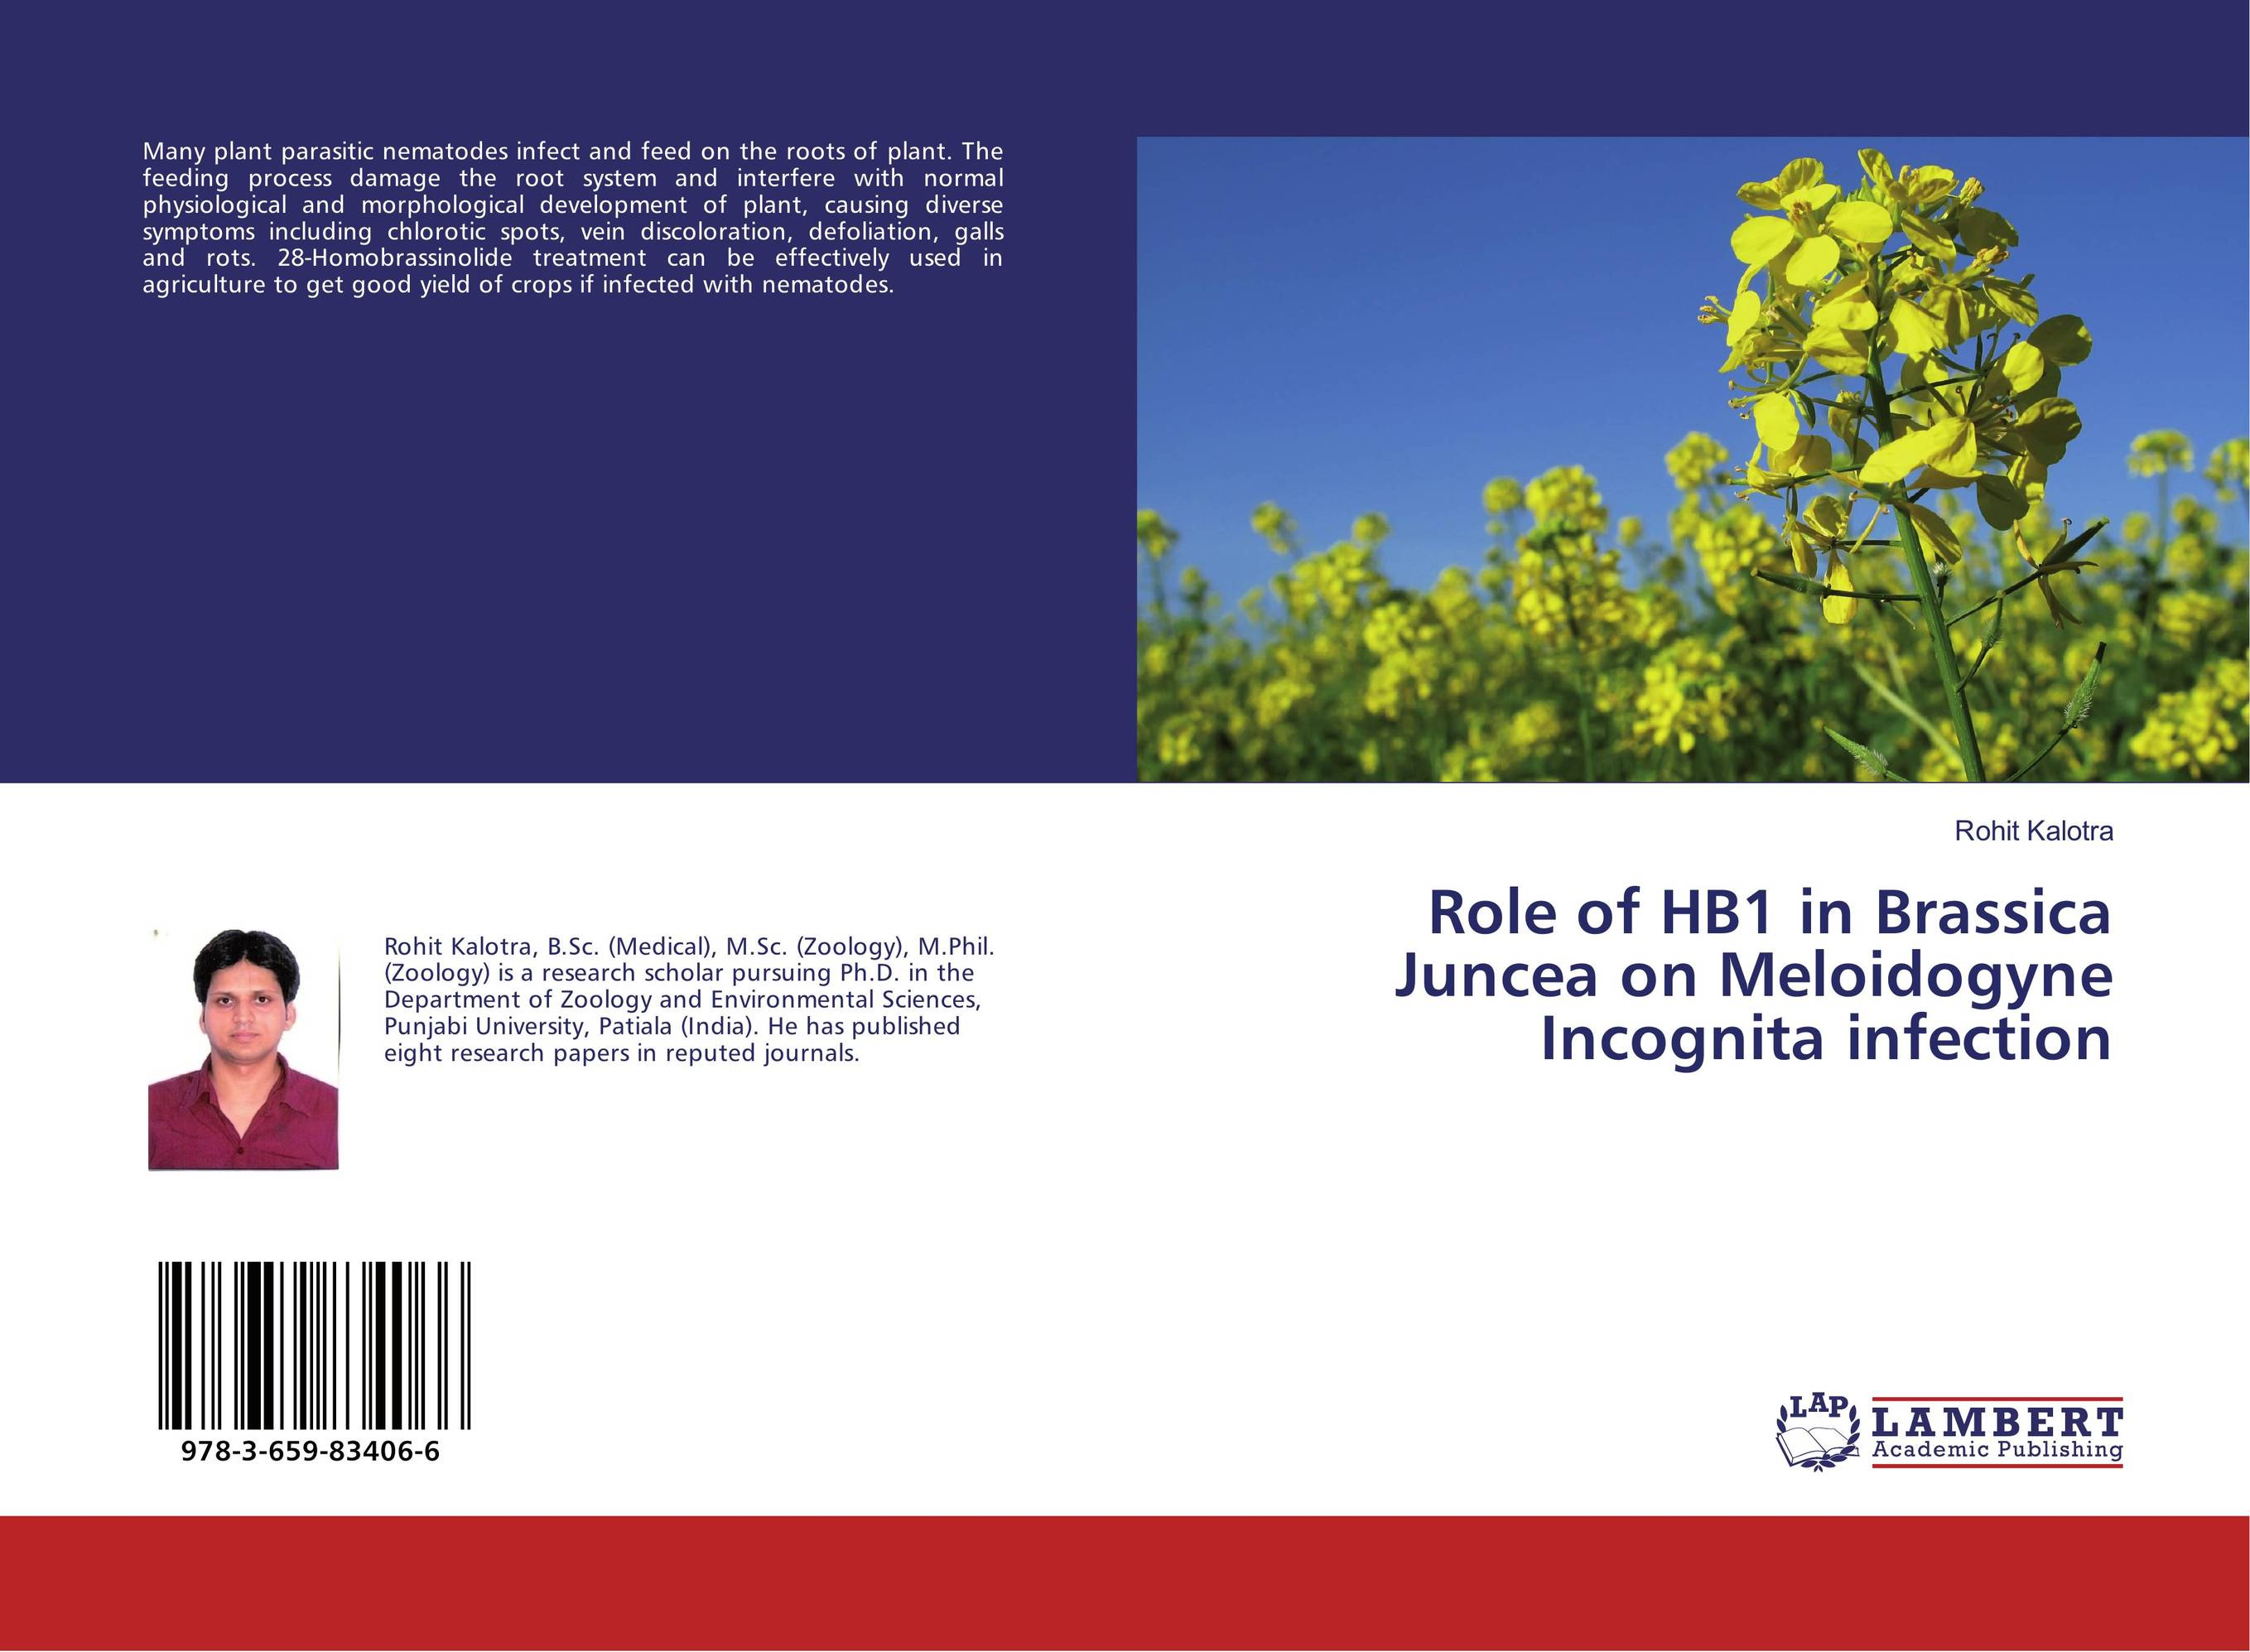 Role of HB1 in Brassica Juncea on Meloidogyne Incognita infection nematodes of vegetable crops their control using plant extracts